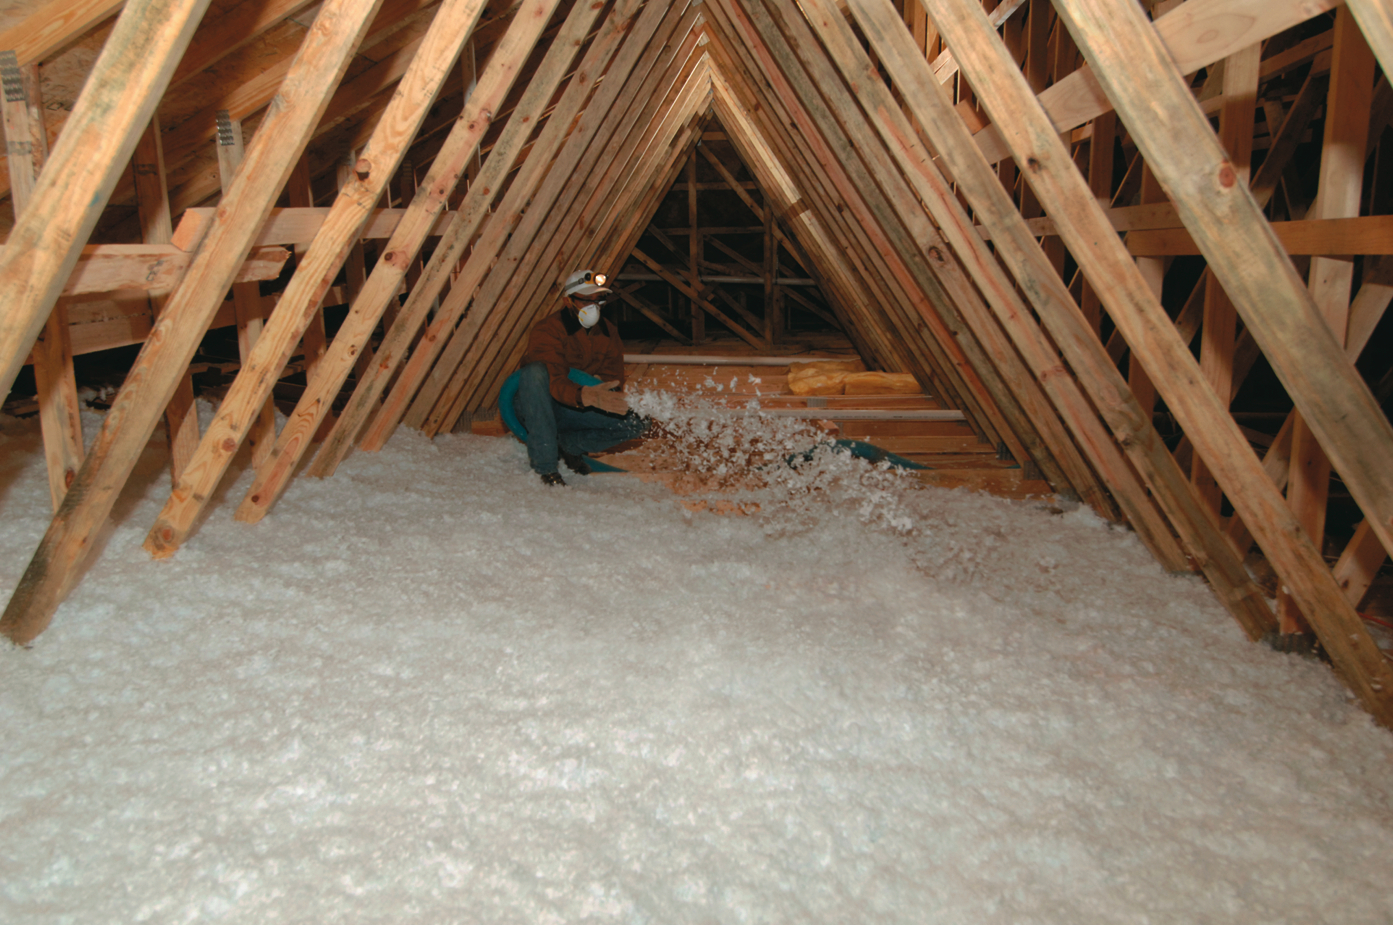 Installing Insulation In An Attic Free Programs